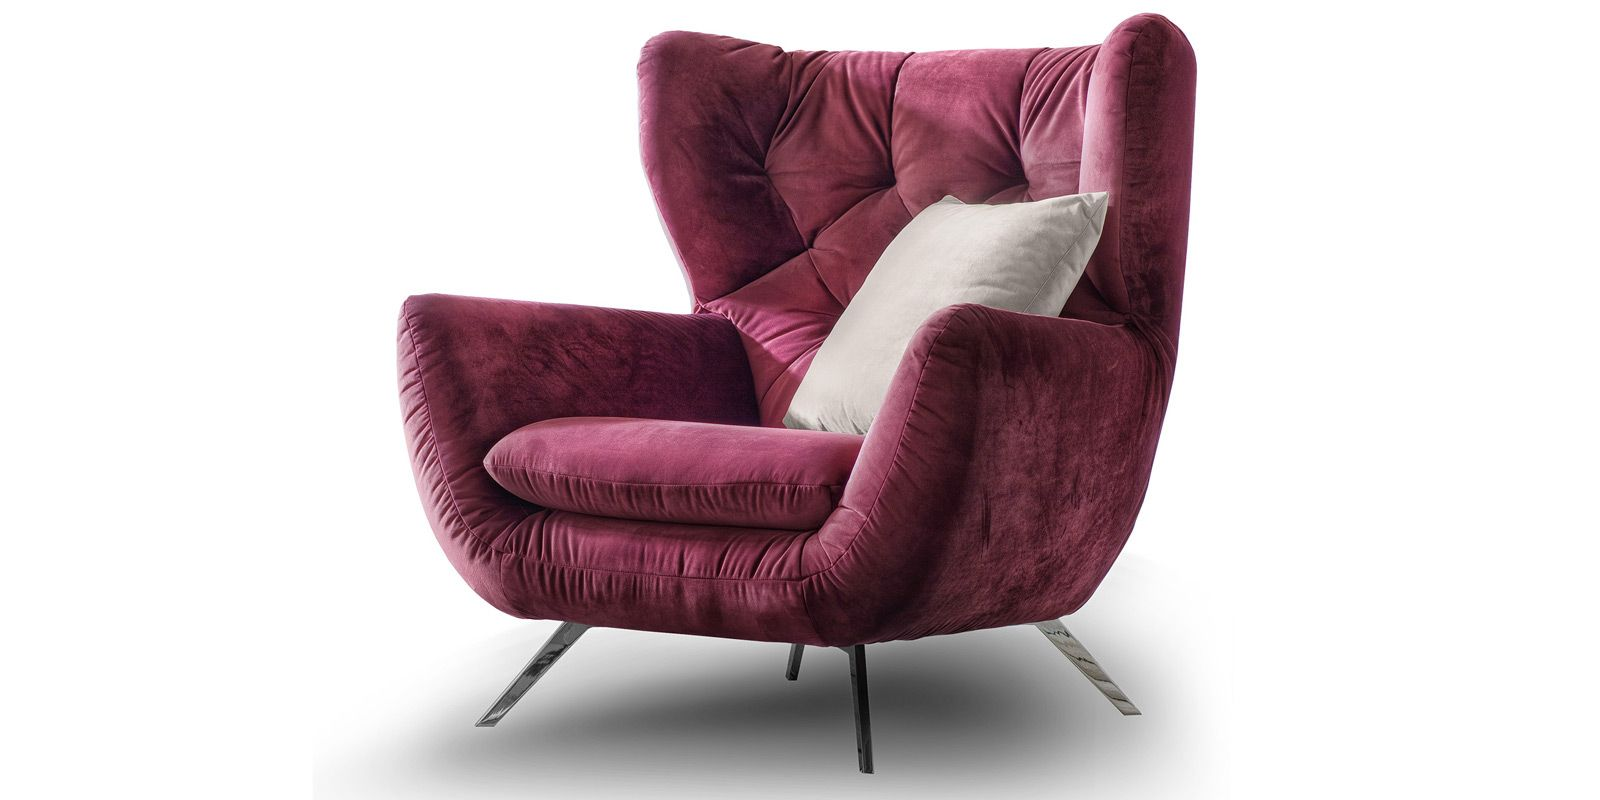 Candy Couchgarnitur Candy Couchgarnitur Sixty Im Chester Look Das Sixty Sofa Ist